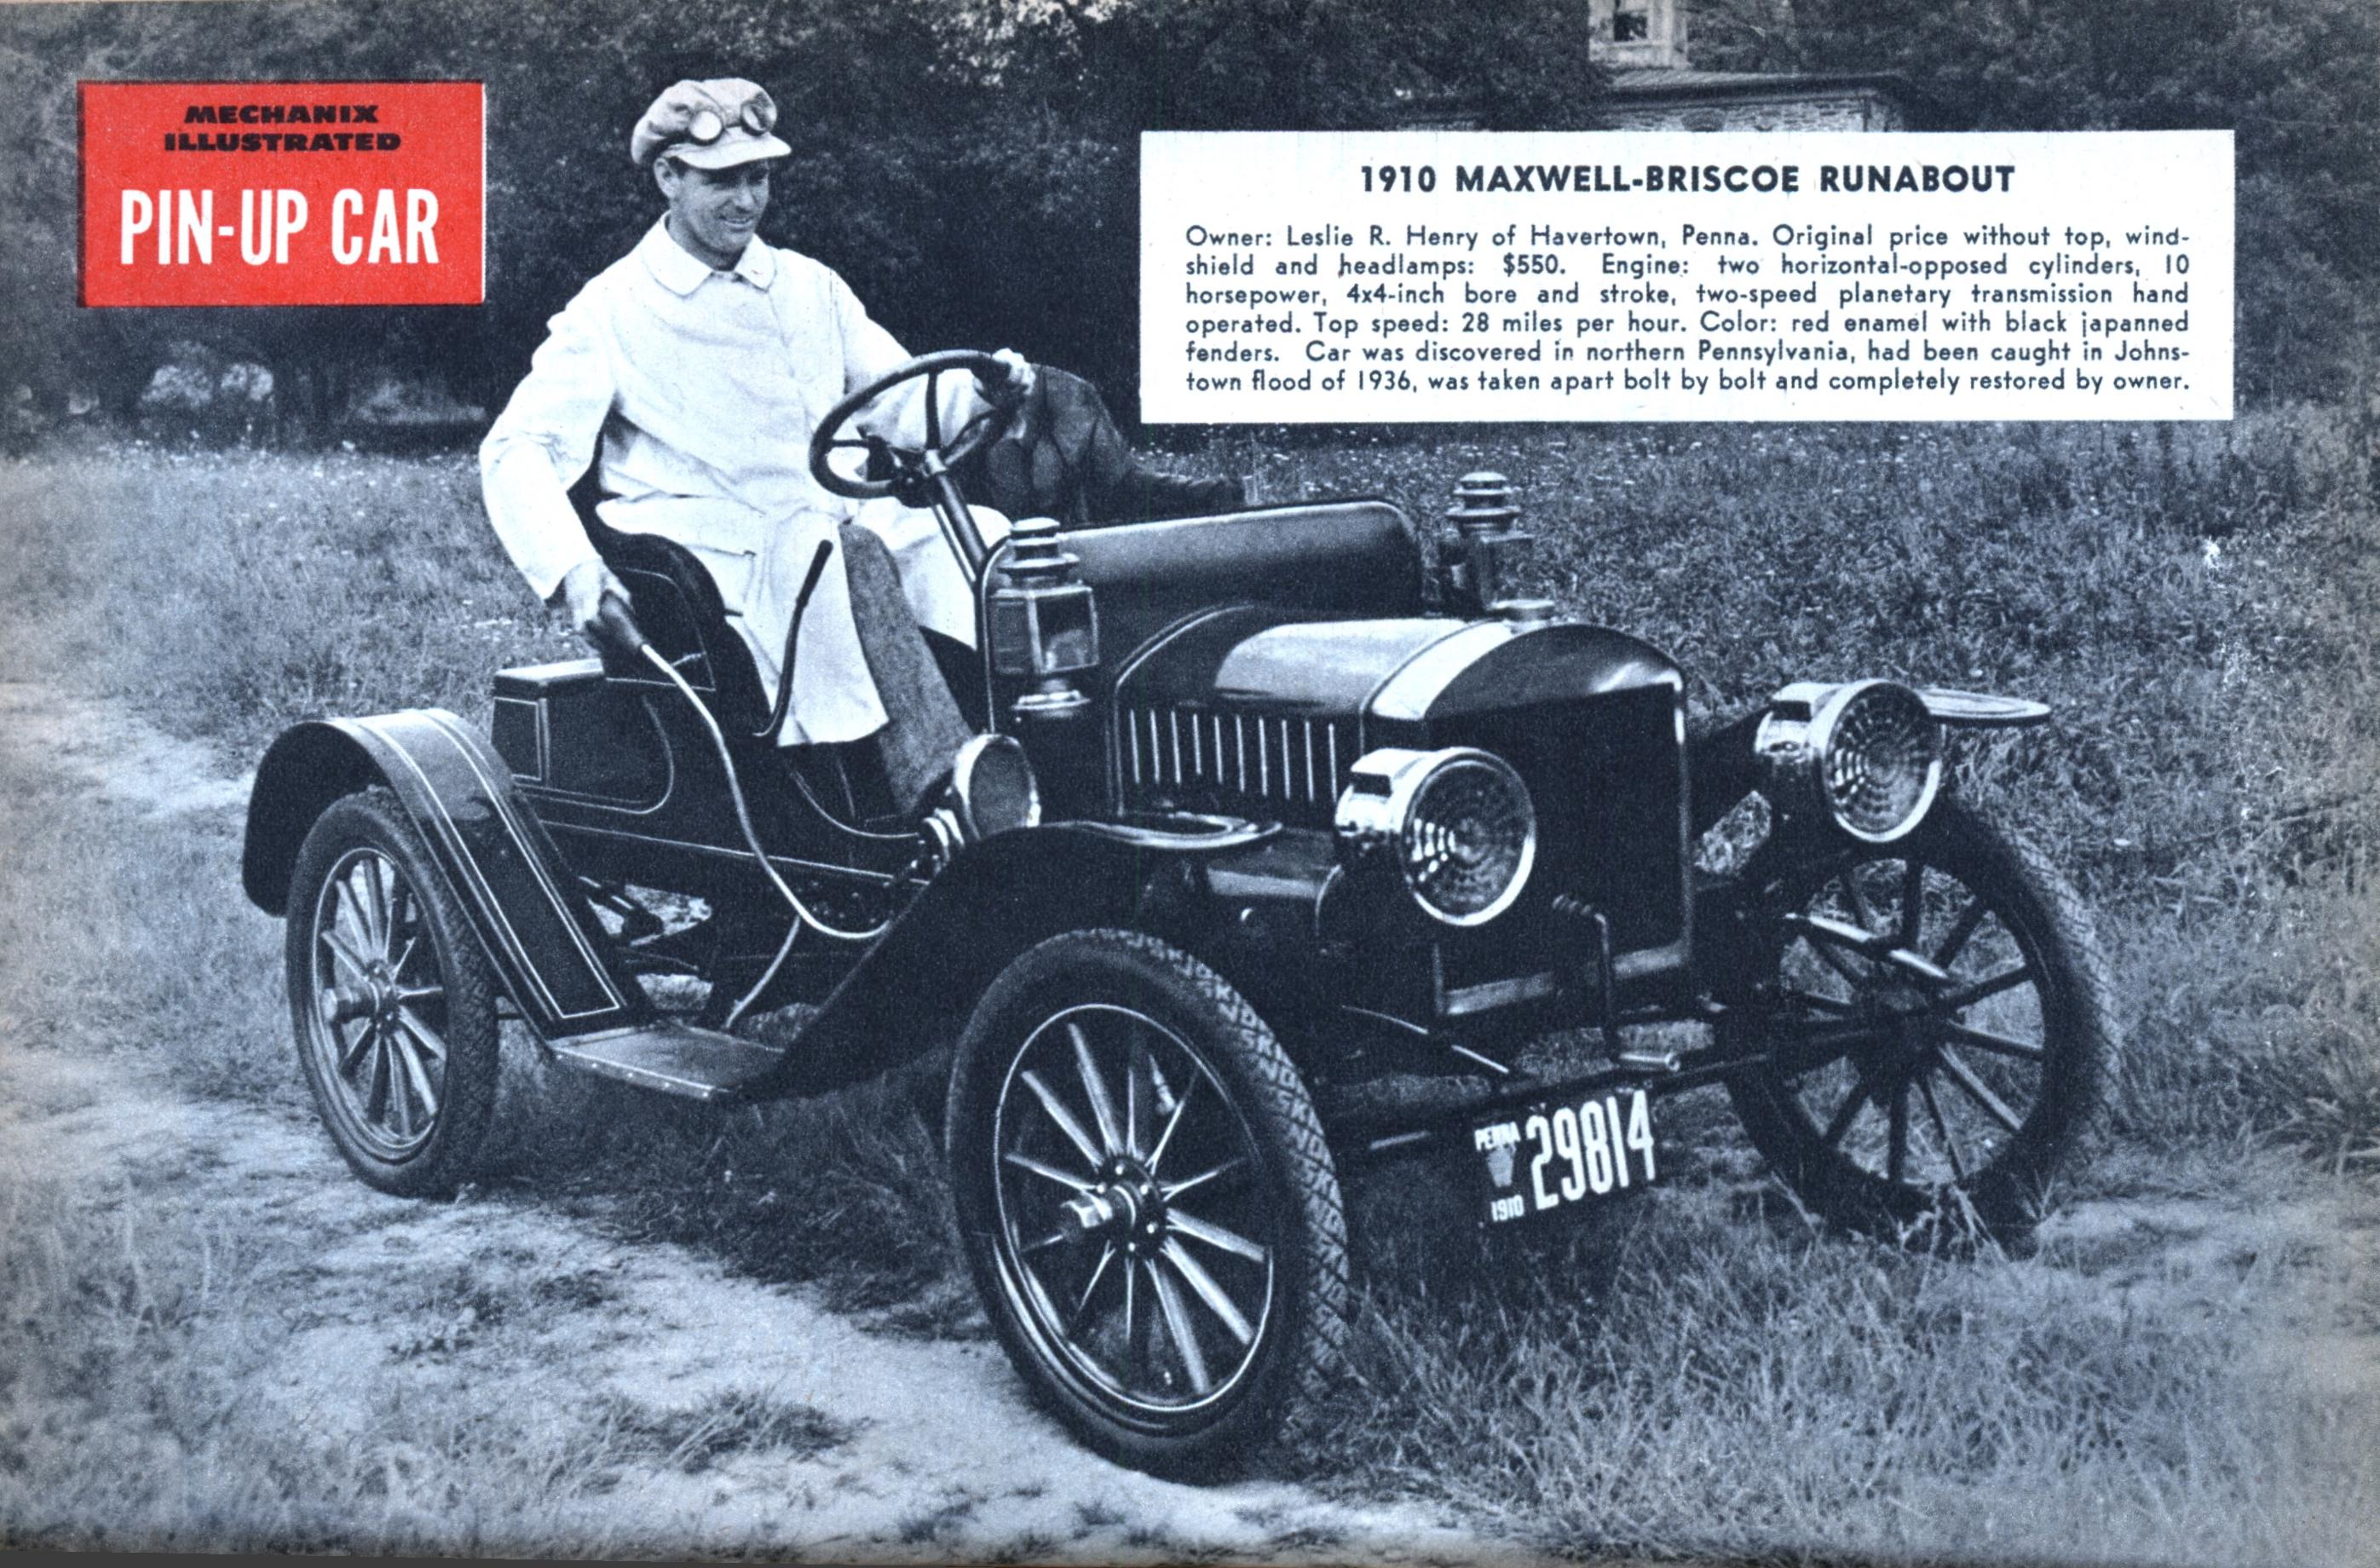 PIN-UP CAR: 1910 MAXWELL-BRISCOE RUNABOUT | Modern Mechanix